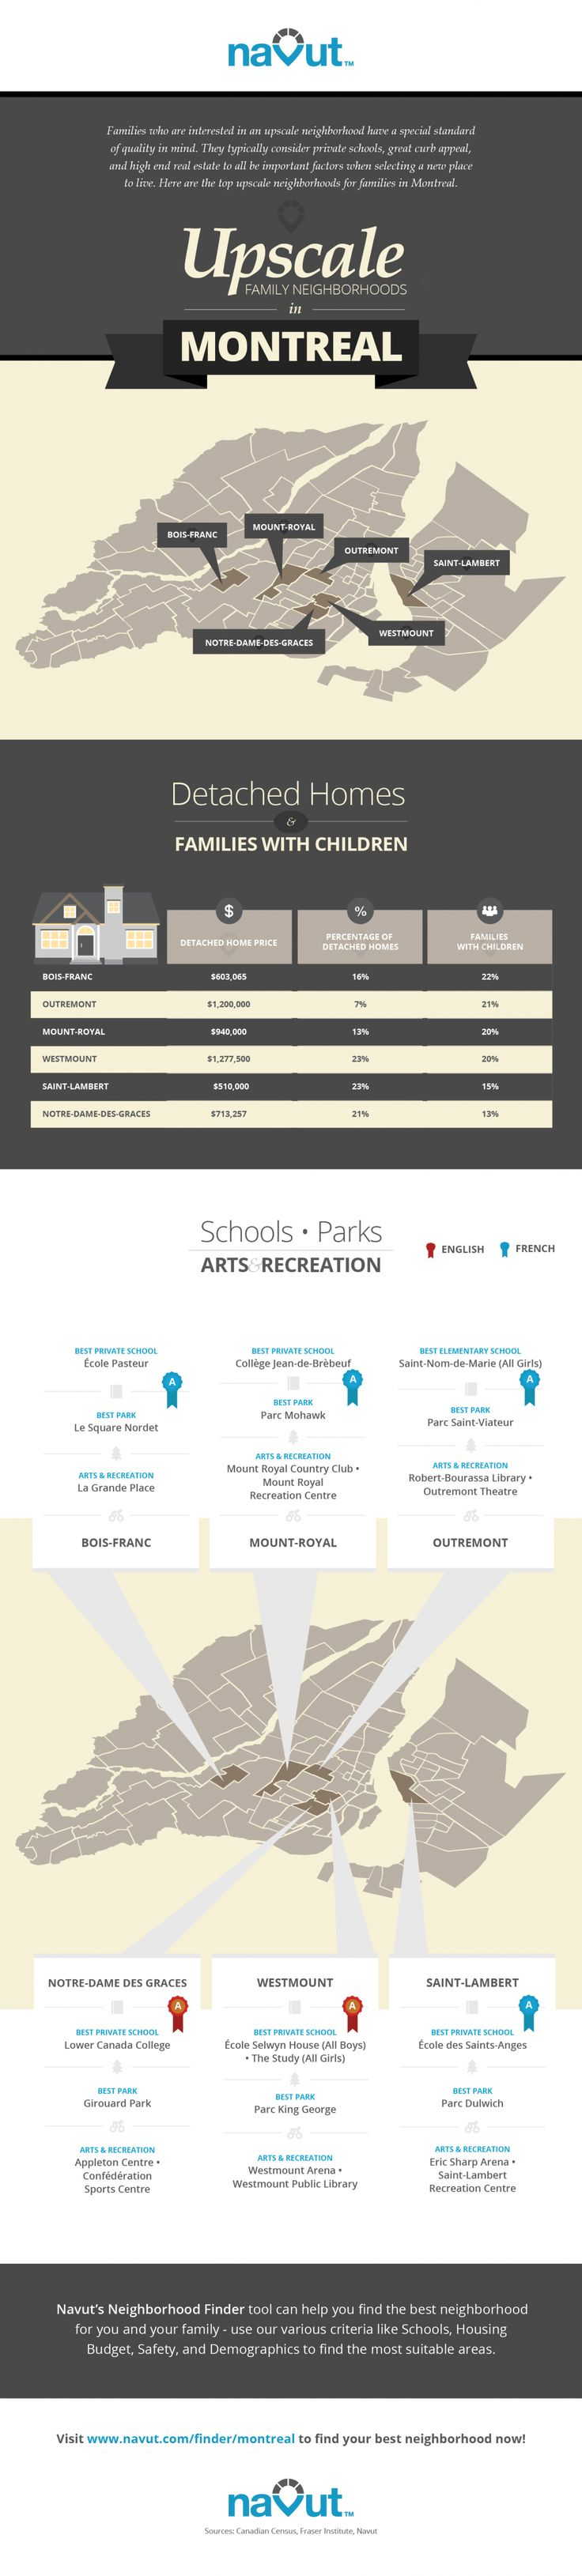 Infographic: Upscale Family Neighborhoods in Montreal | Navut Blog